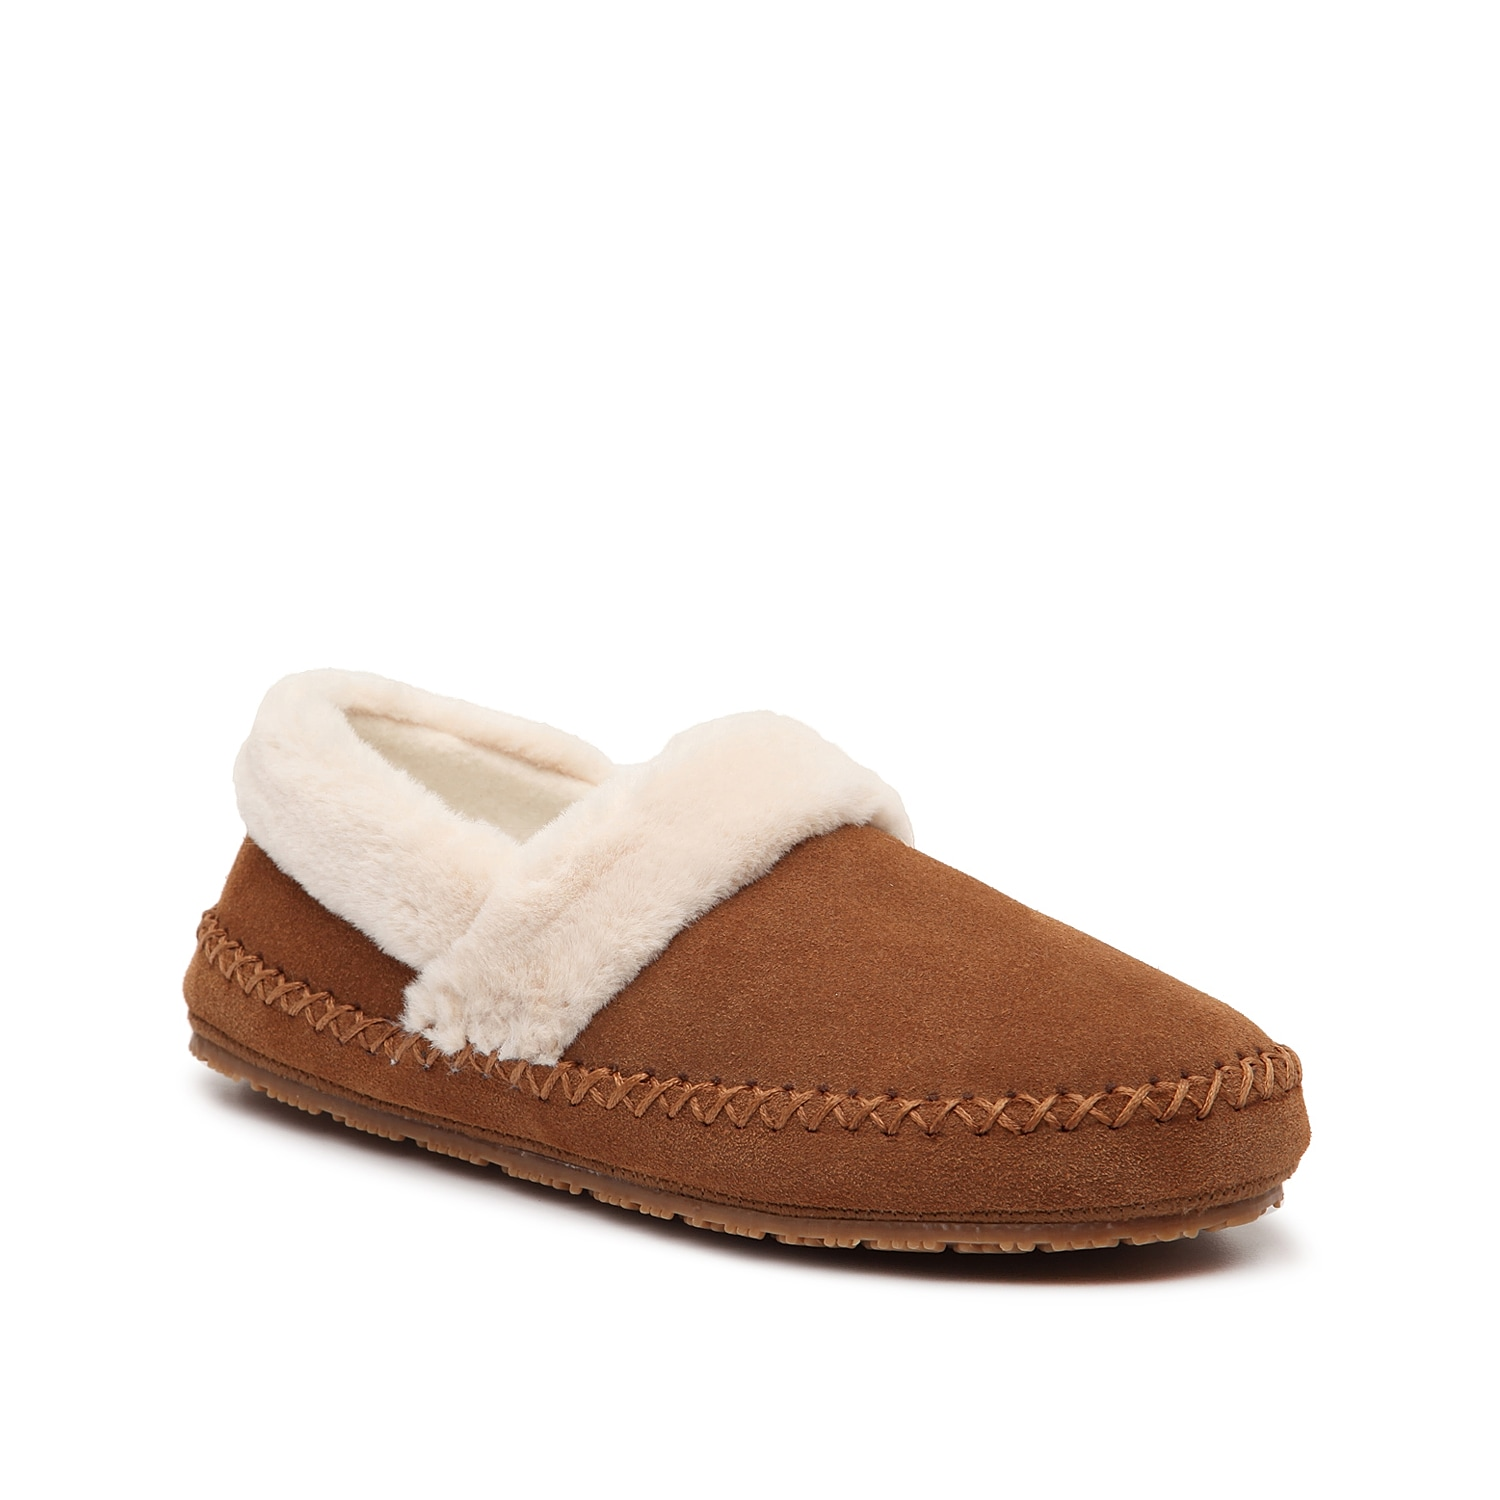 Sit back in the Acelynn slippers from Tempur-Pedic. These slip-ons feature whipstitch detailing for visual appeal and a Tempur-Pedic® footbed for relax-ready comfort.